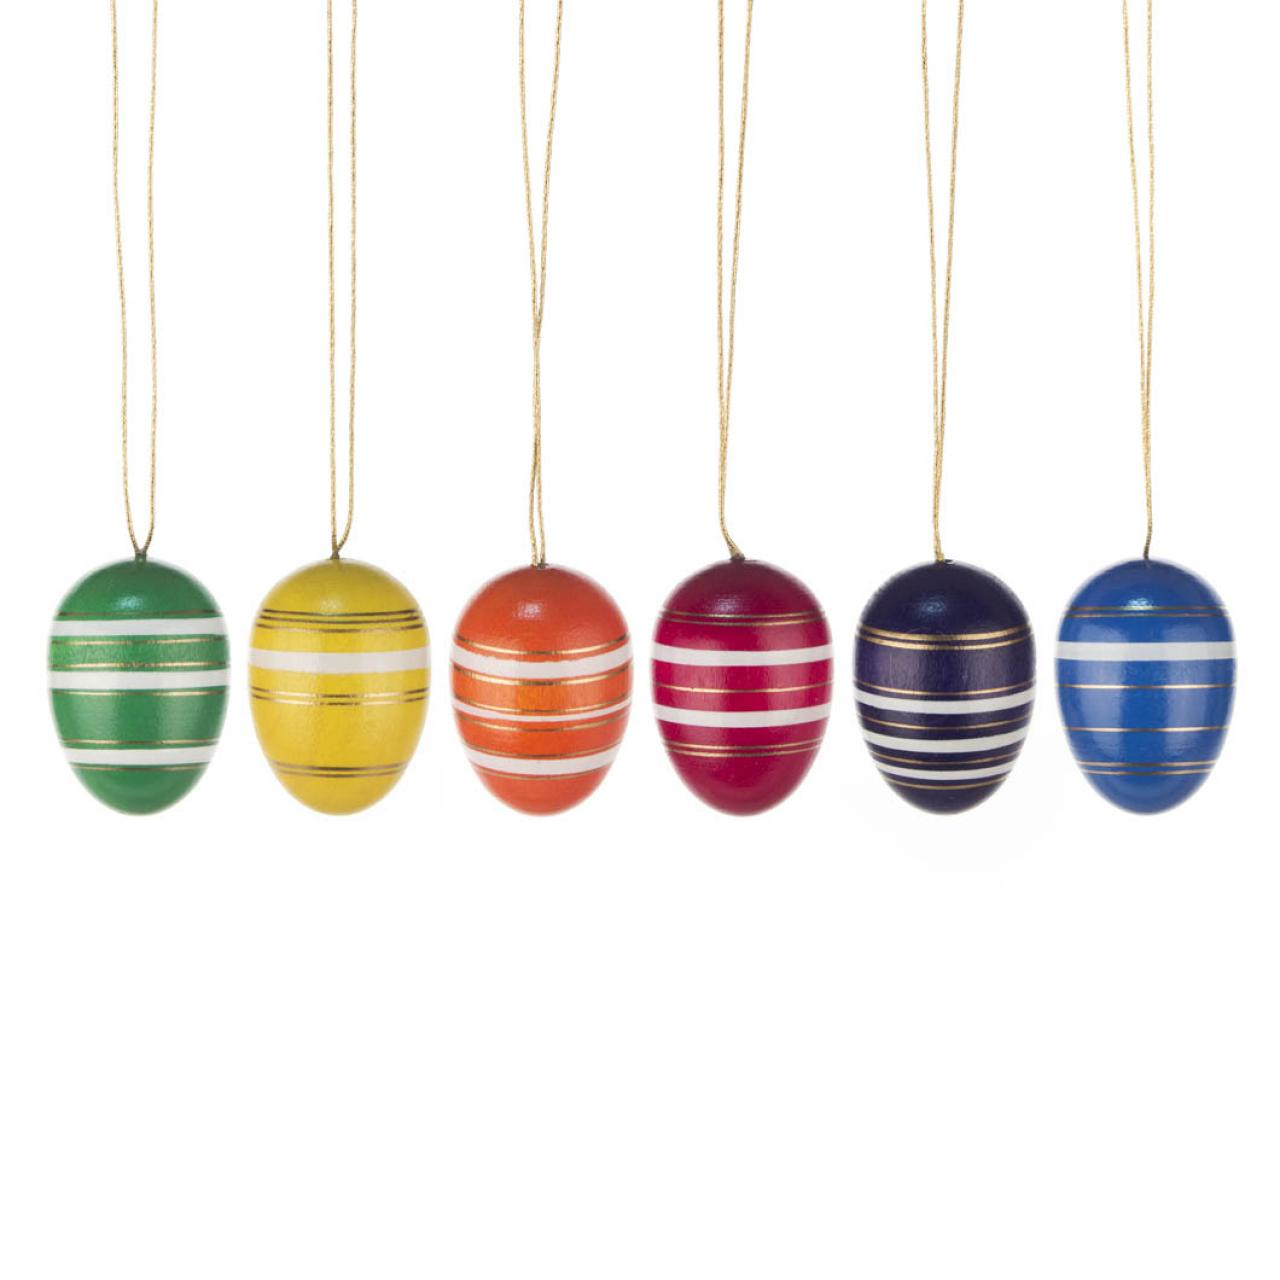 Easter Tree Decoration - Fine-banded Eggs